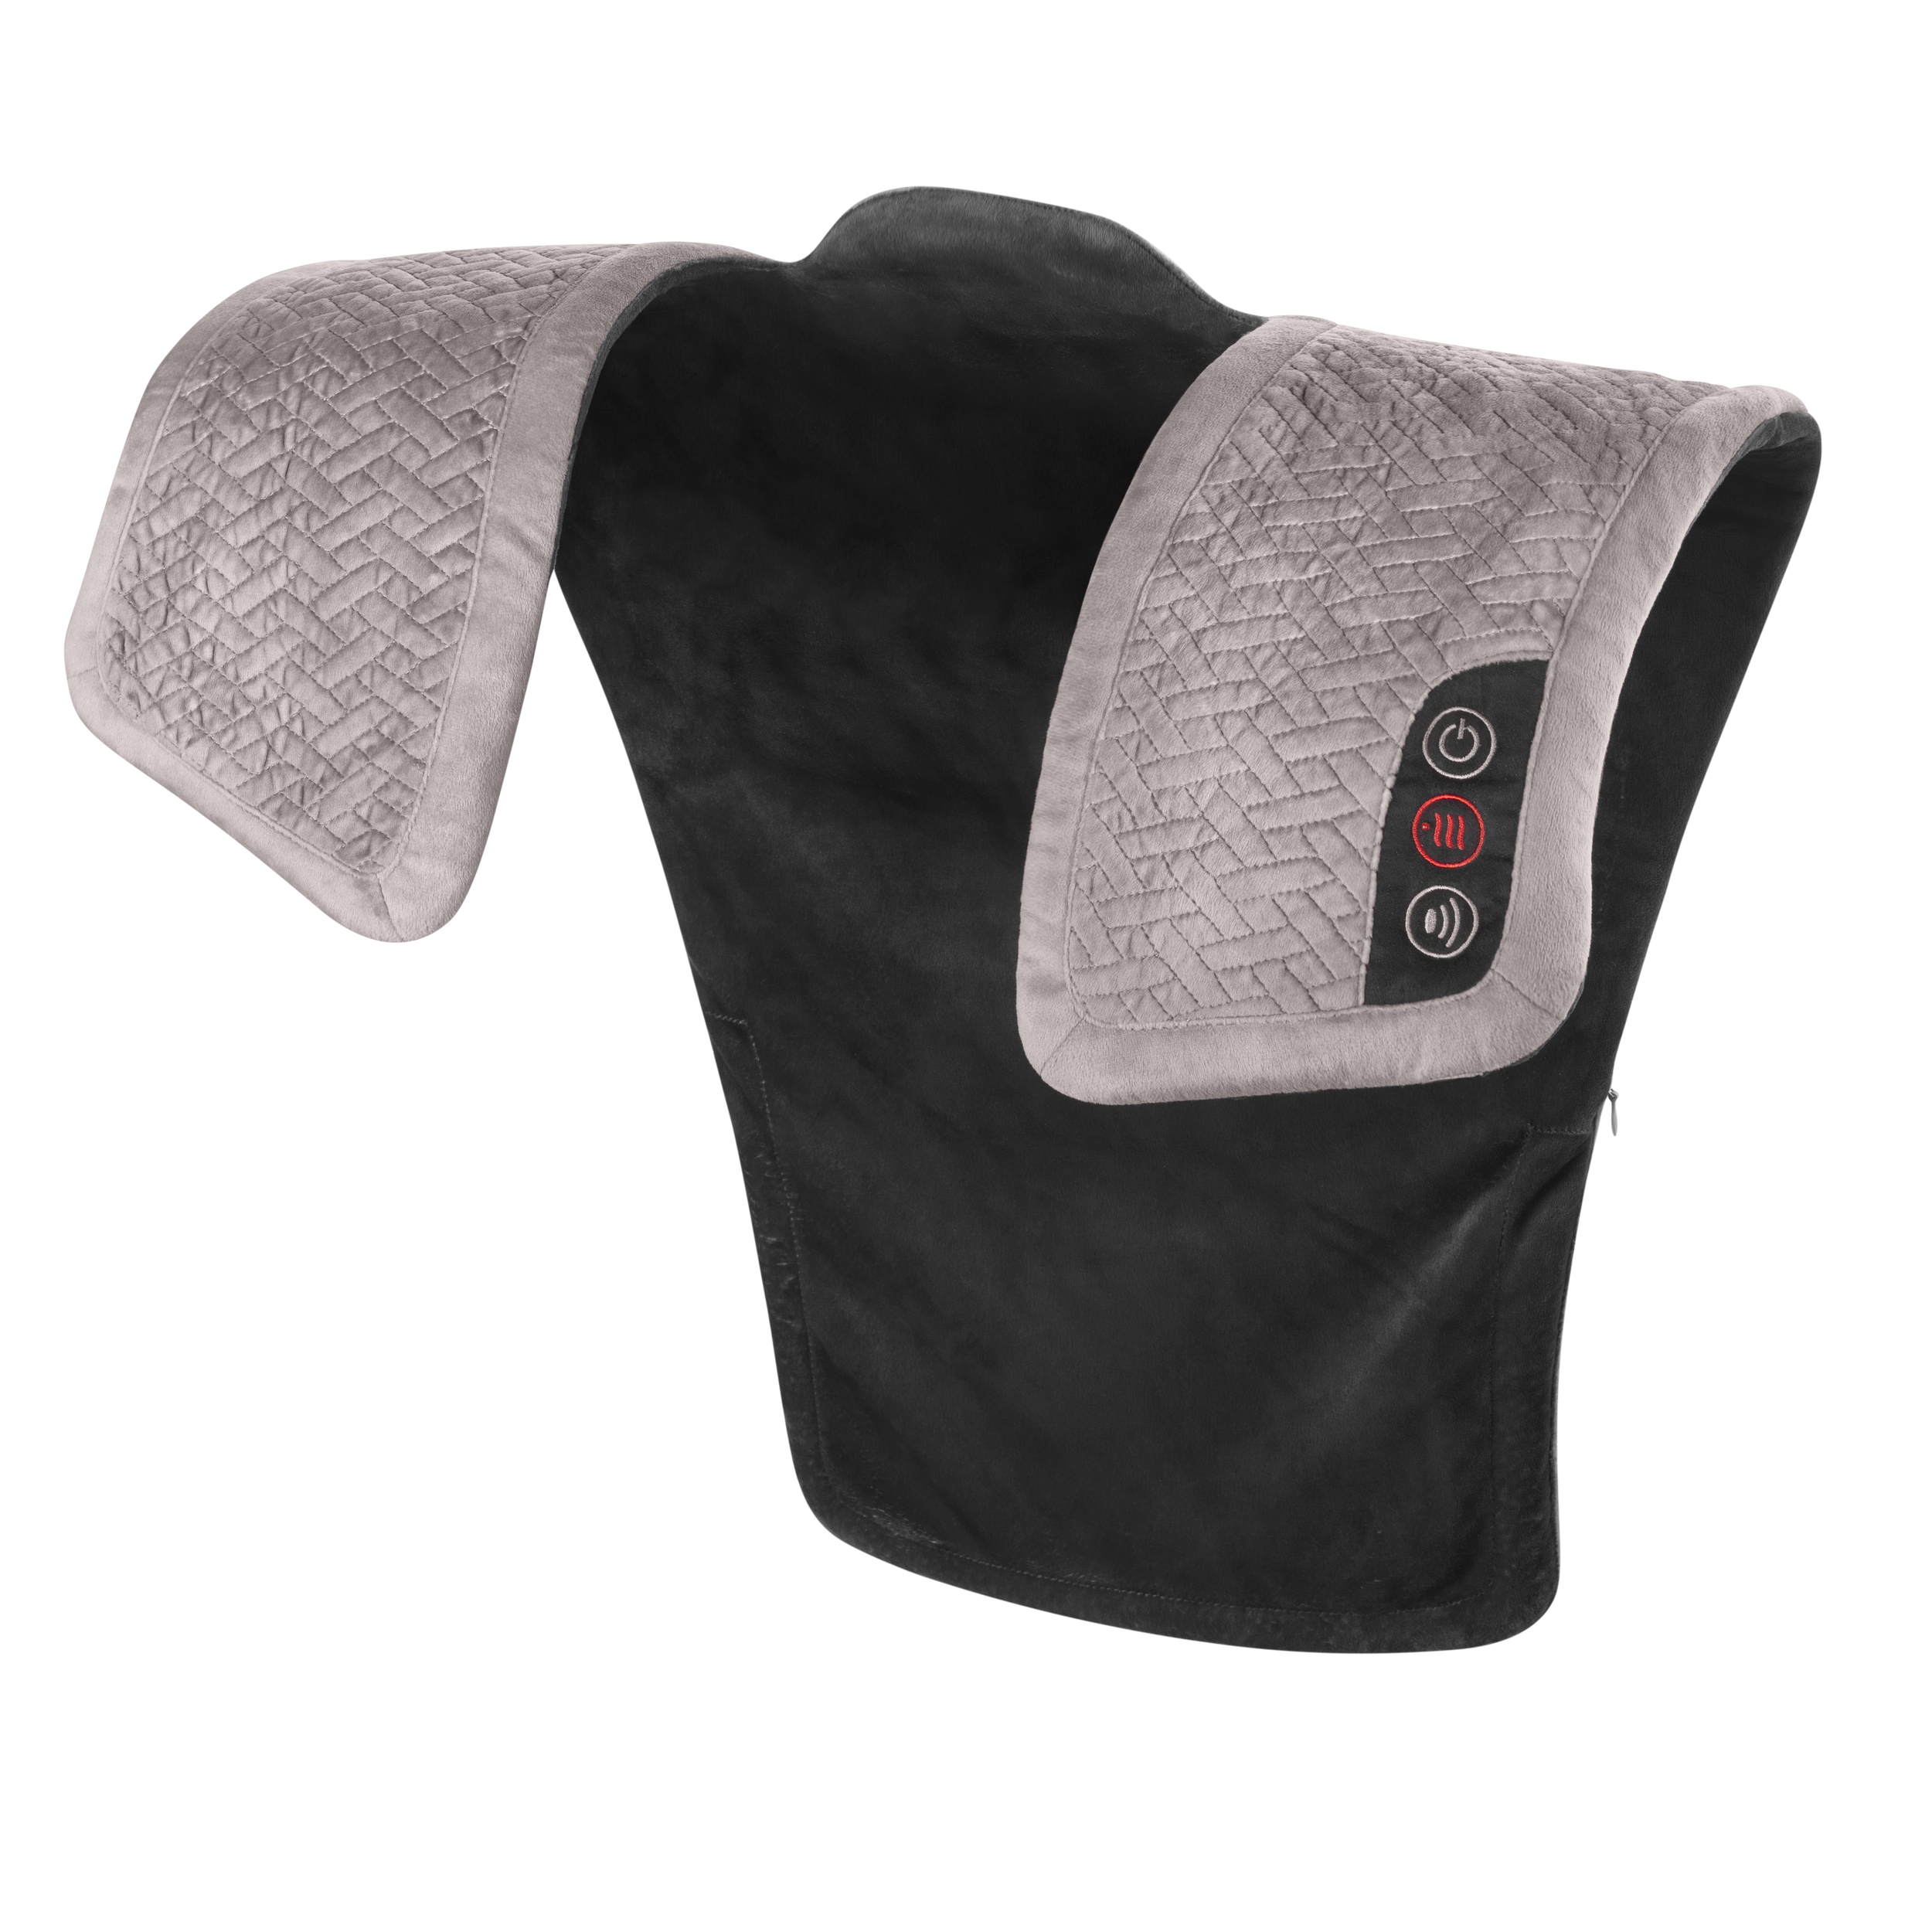 HoMedics Comfort Pro Elite Massaging Vibration Wrap With Heat, NMS-450H